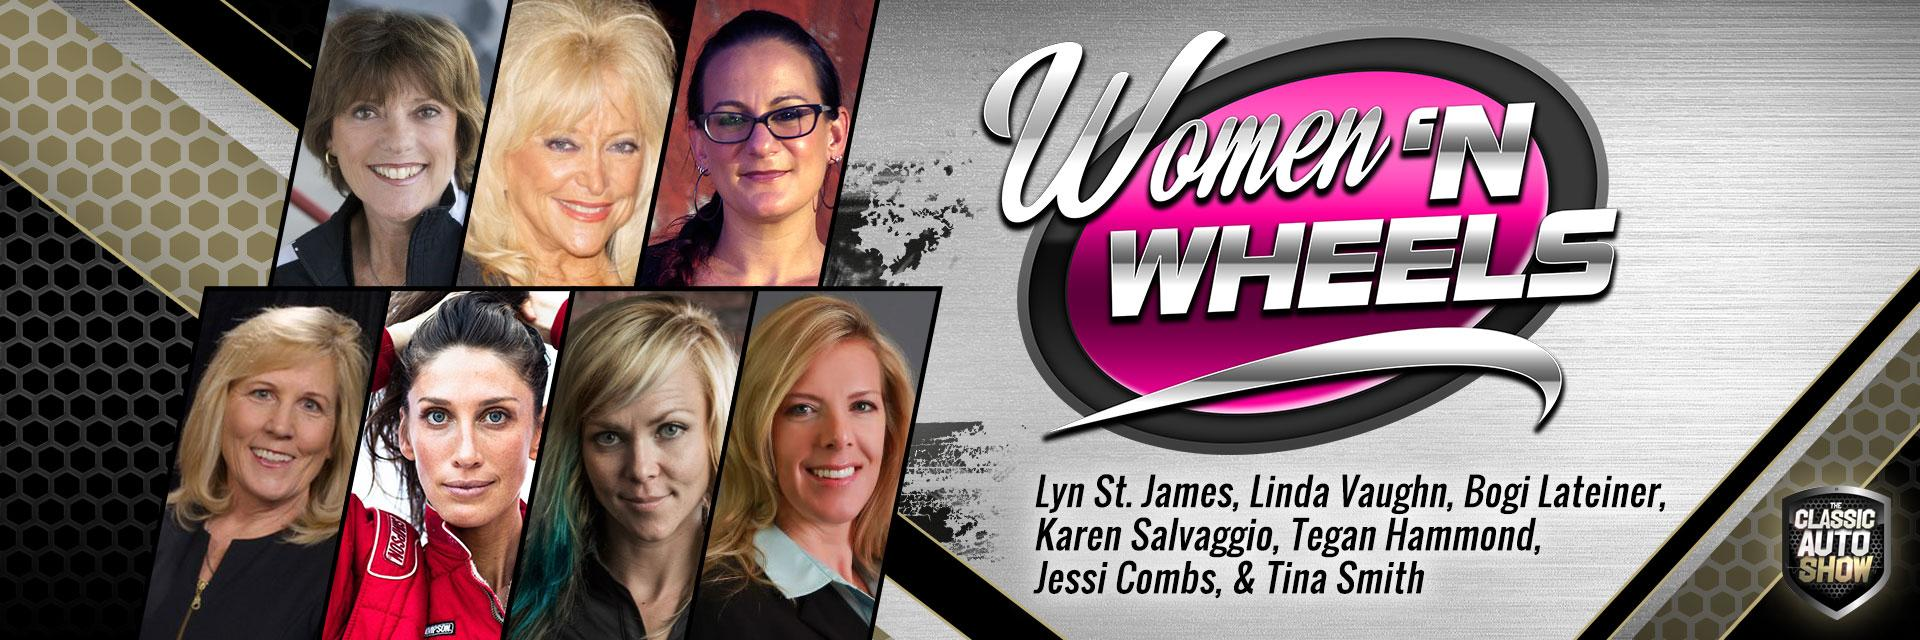 Auto Women 'n Wheels, Lyn St. James, Linda Vaughn, Bogi, All Girls Garage, Jessi Combs,